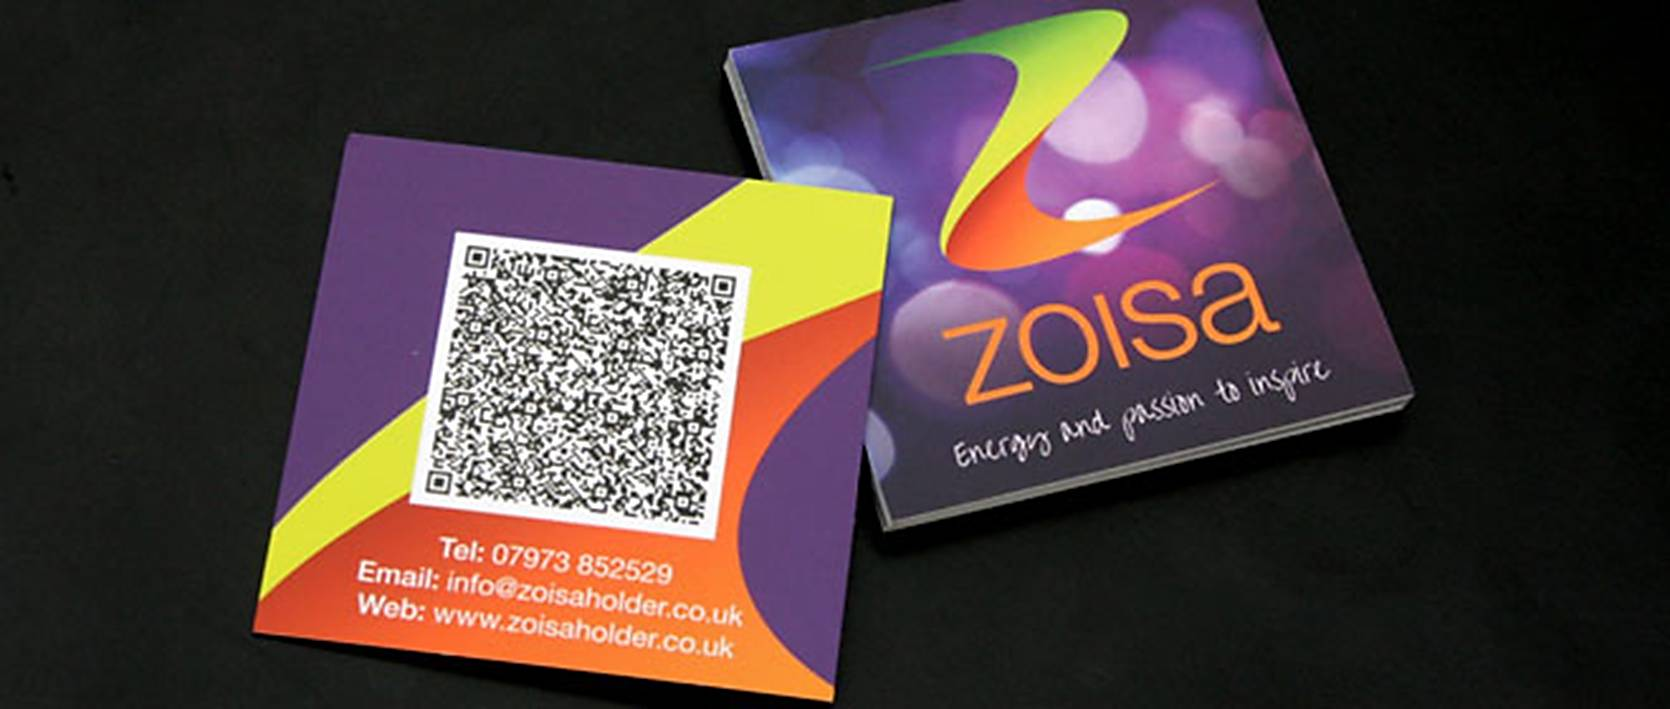 zoisa card with QR Code